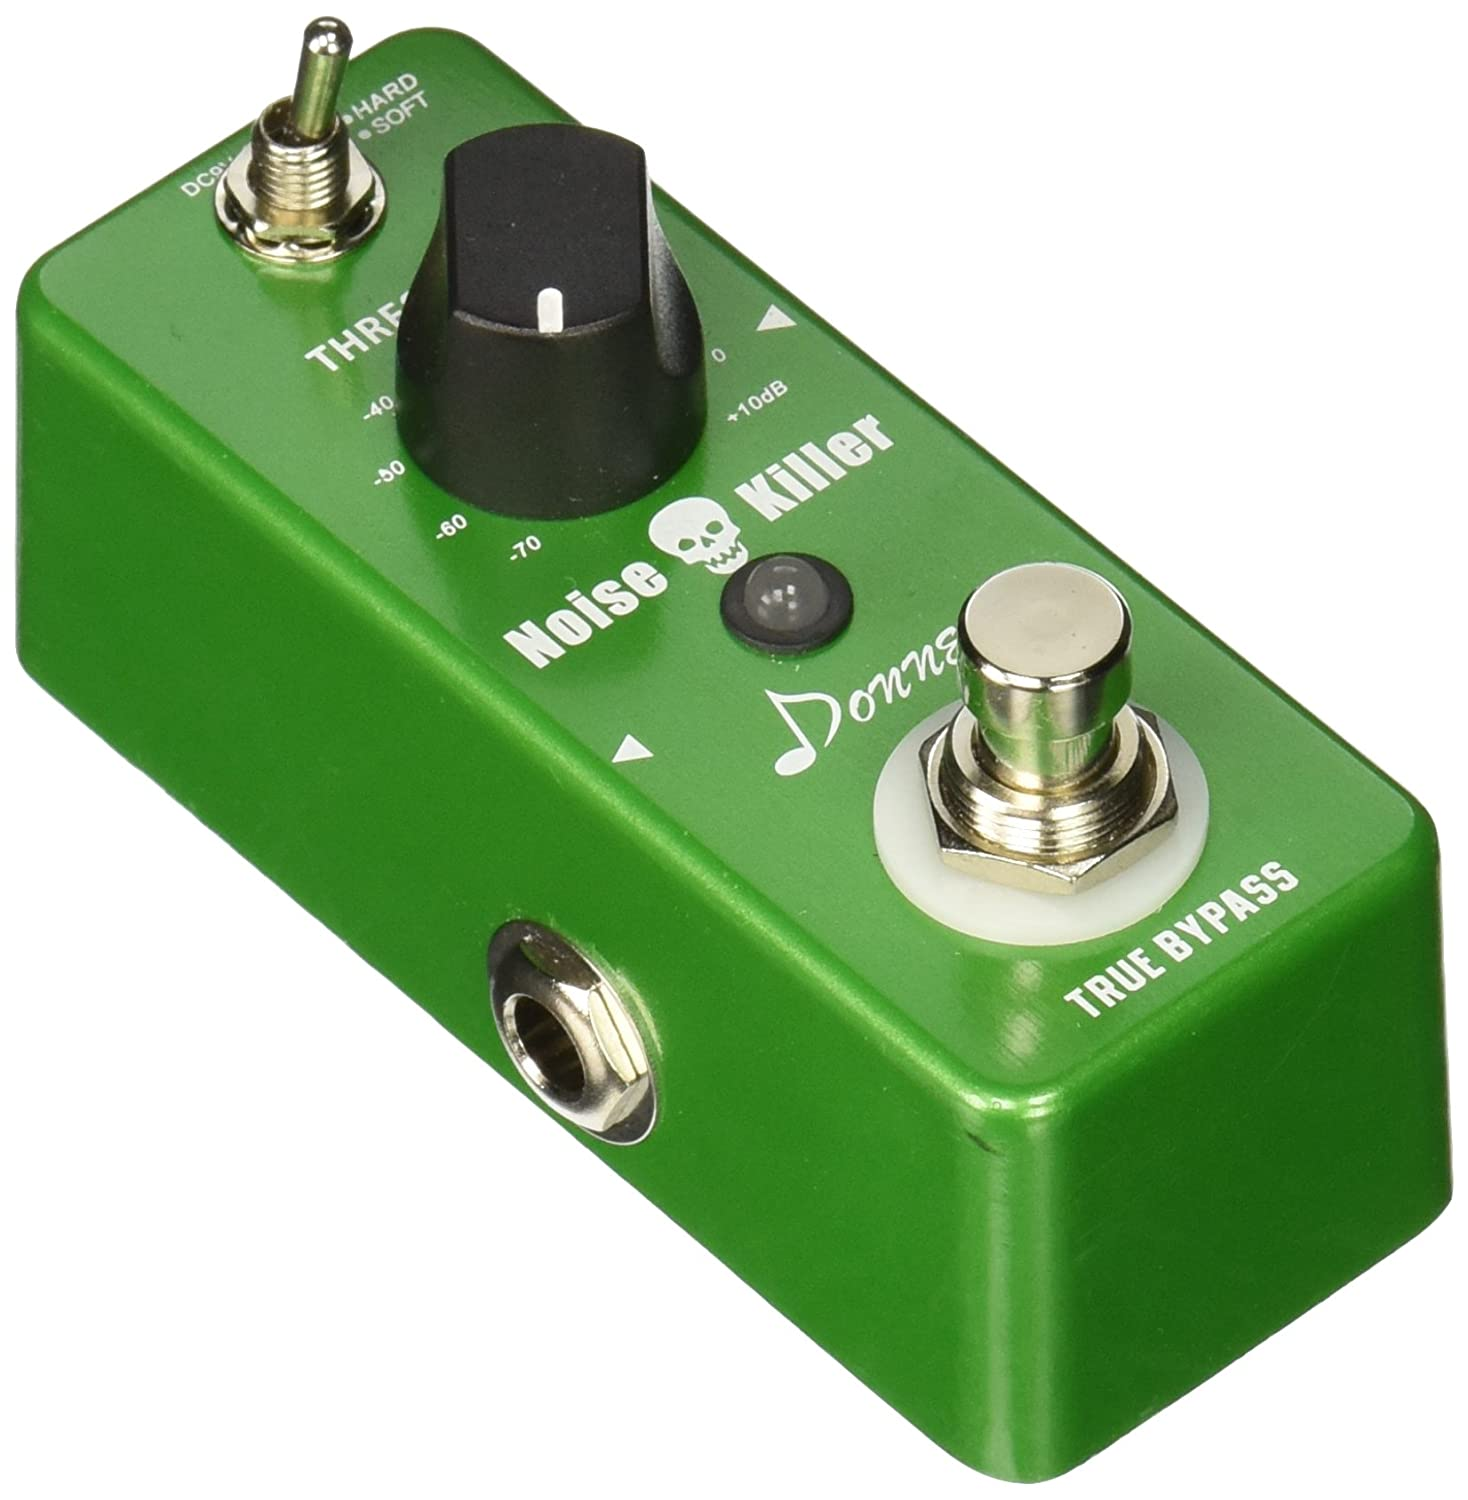 shop electric guitar effects